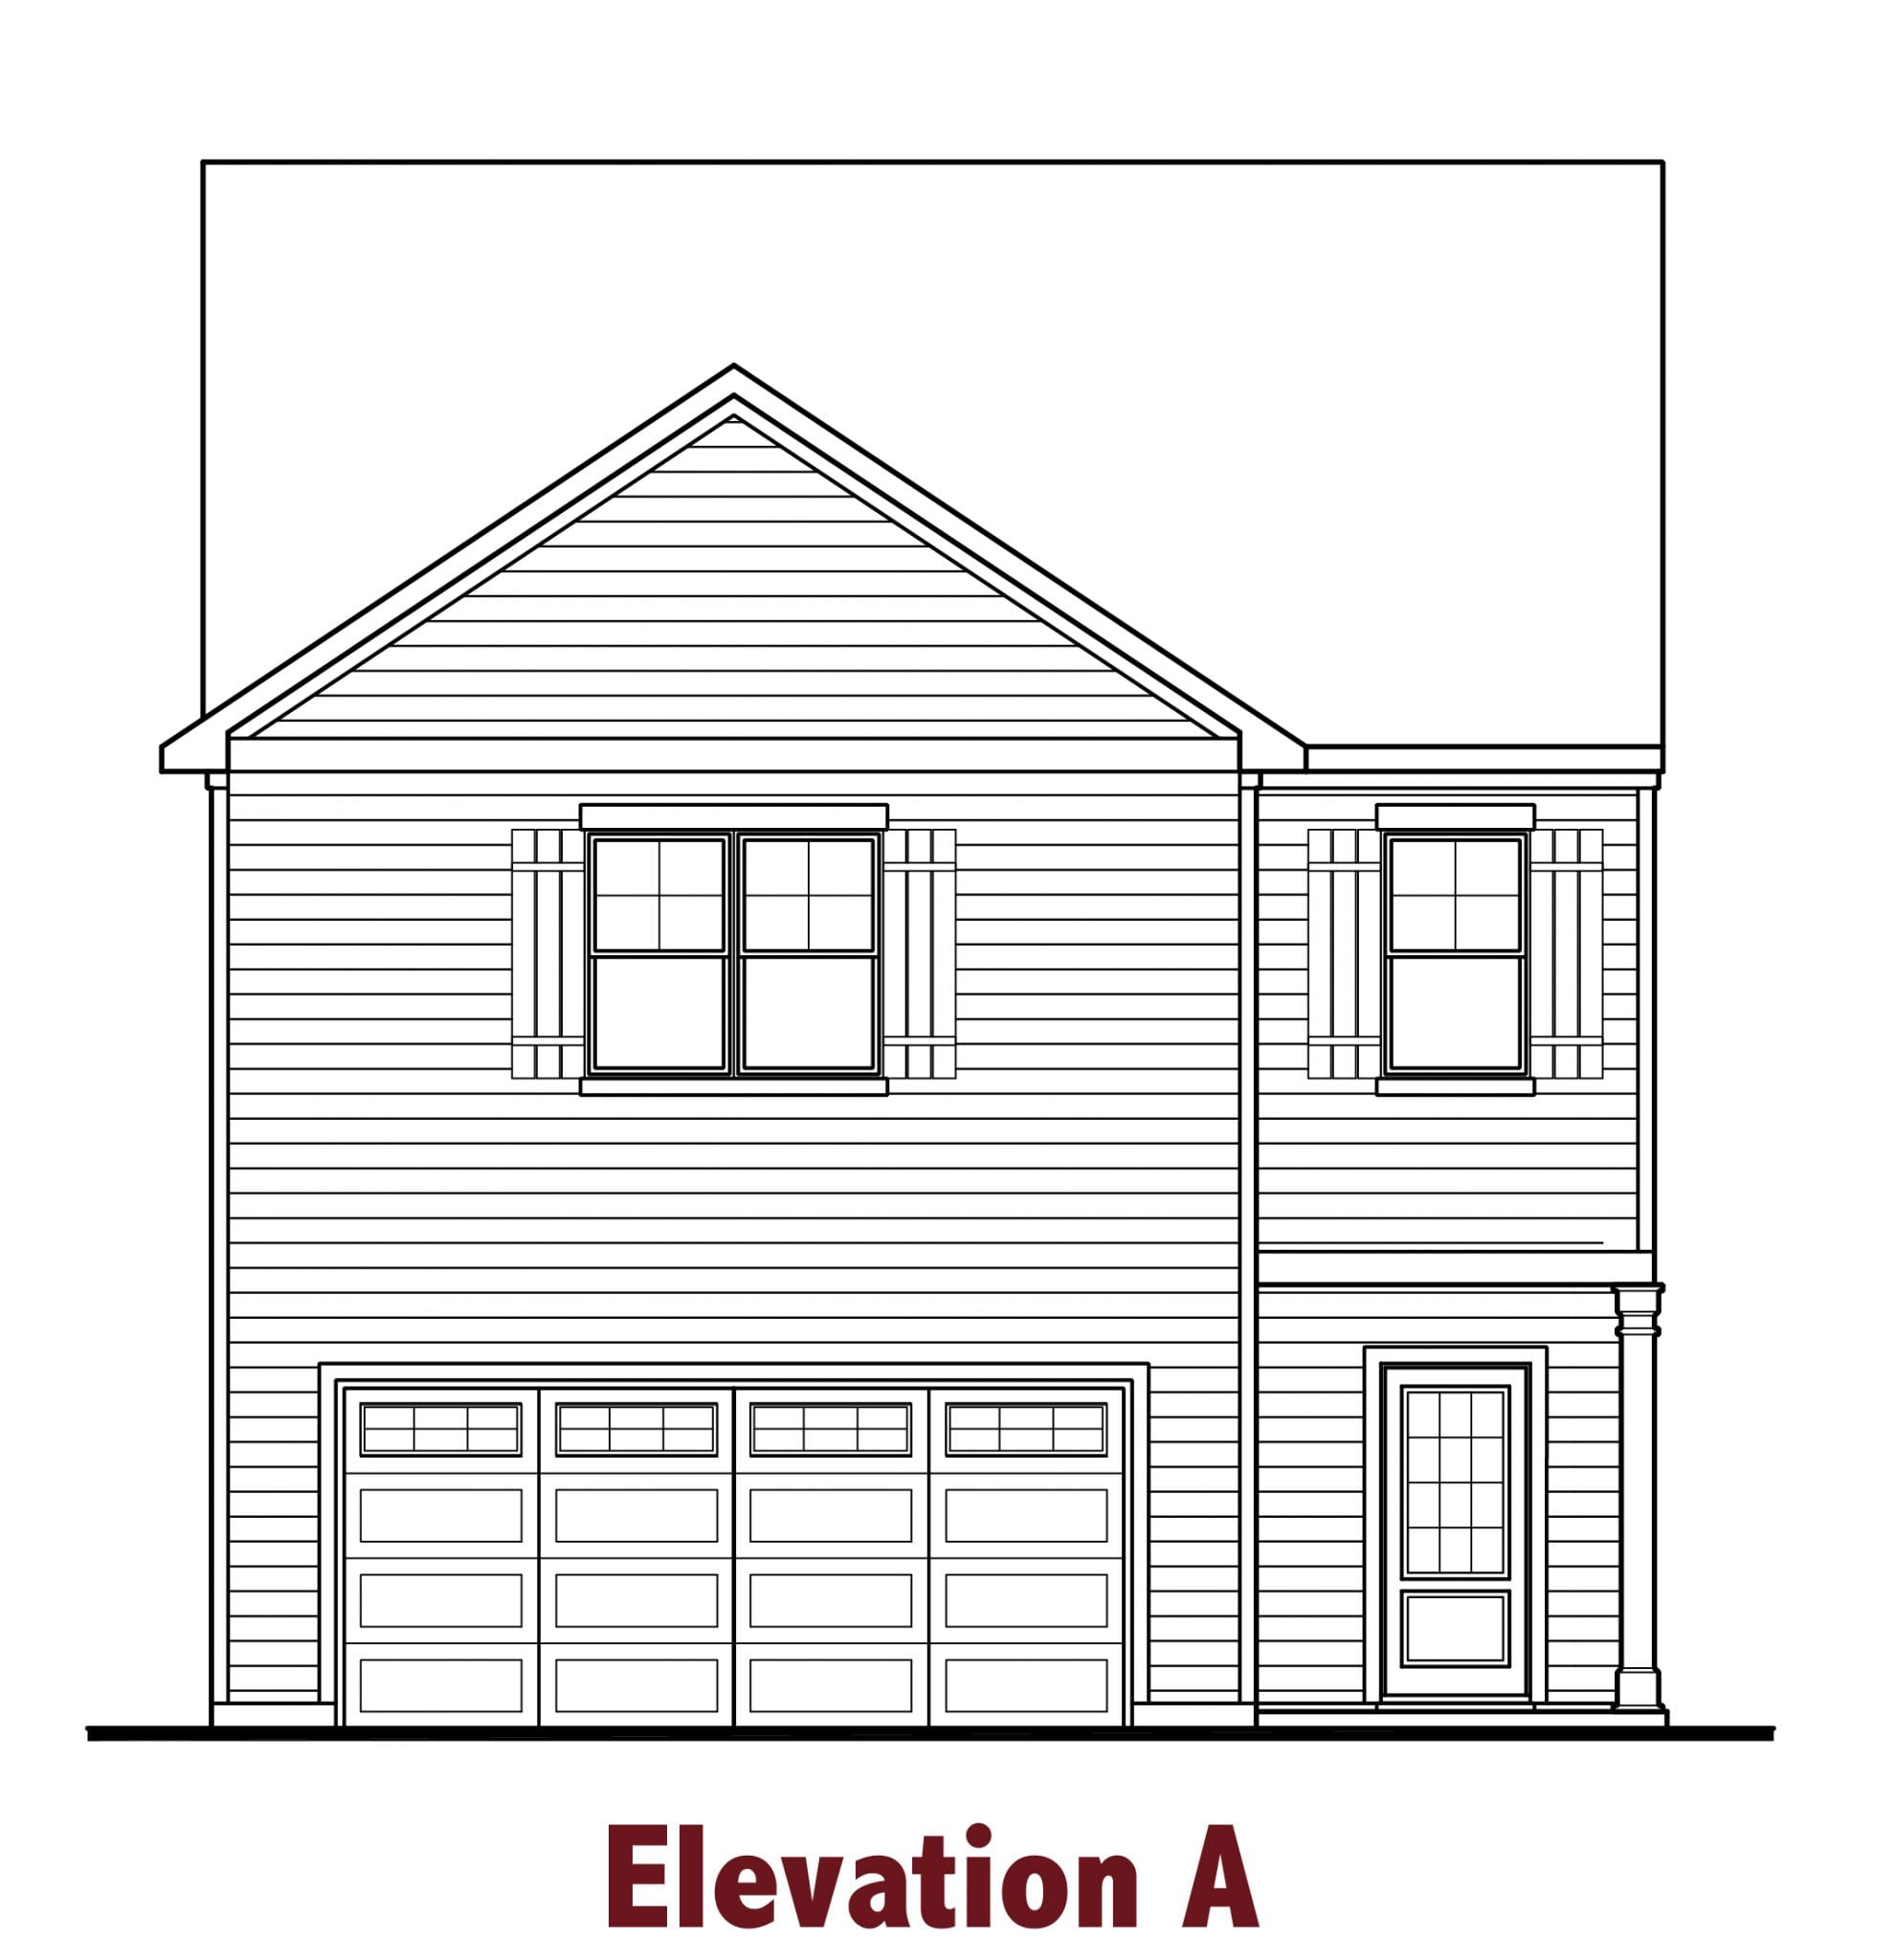 Pembroke elevations Image